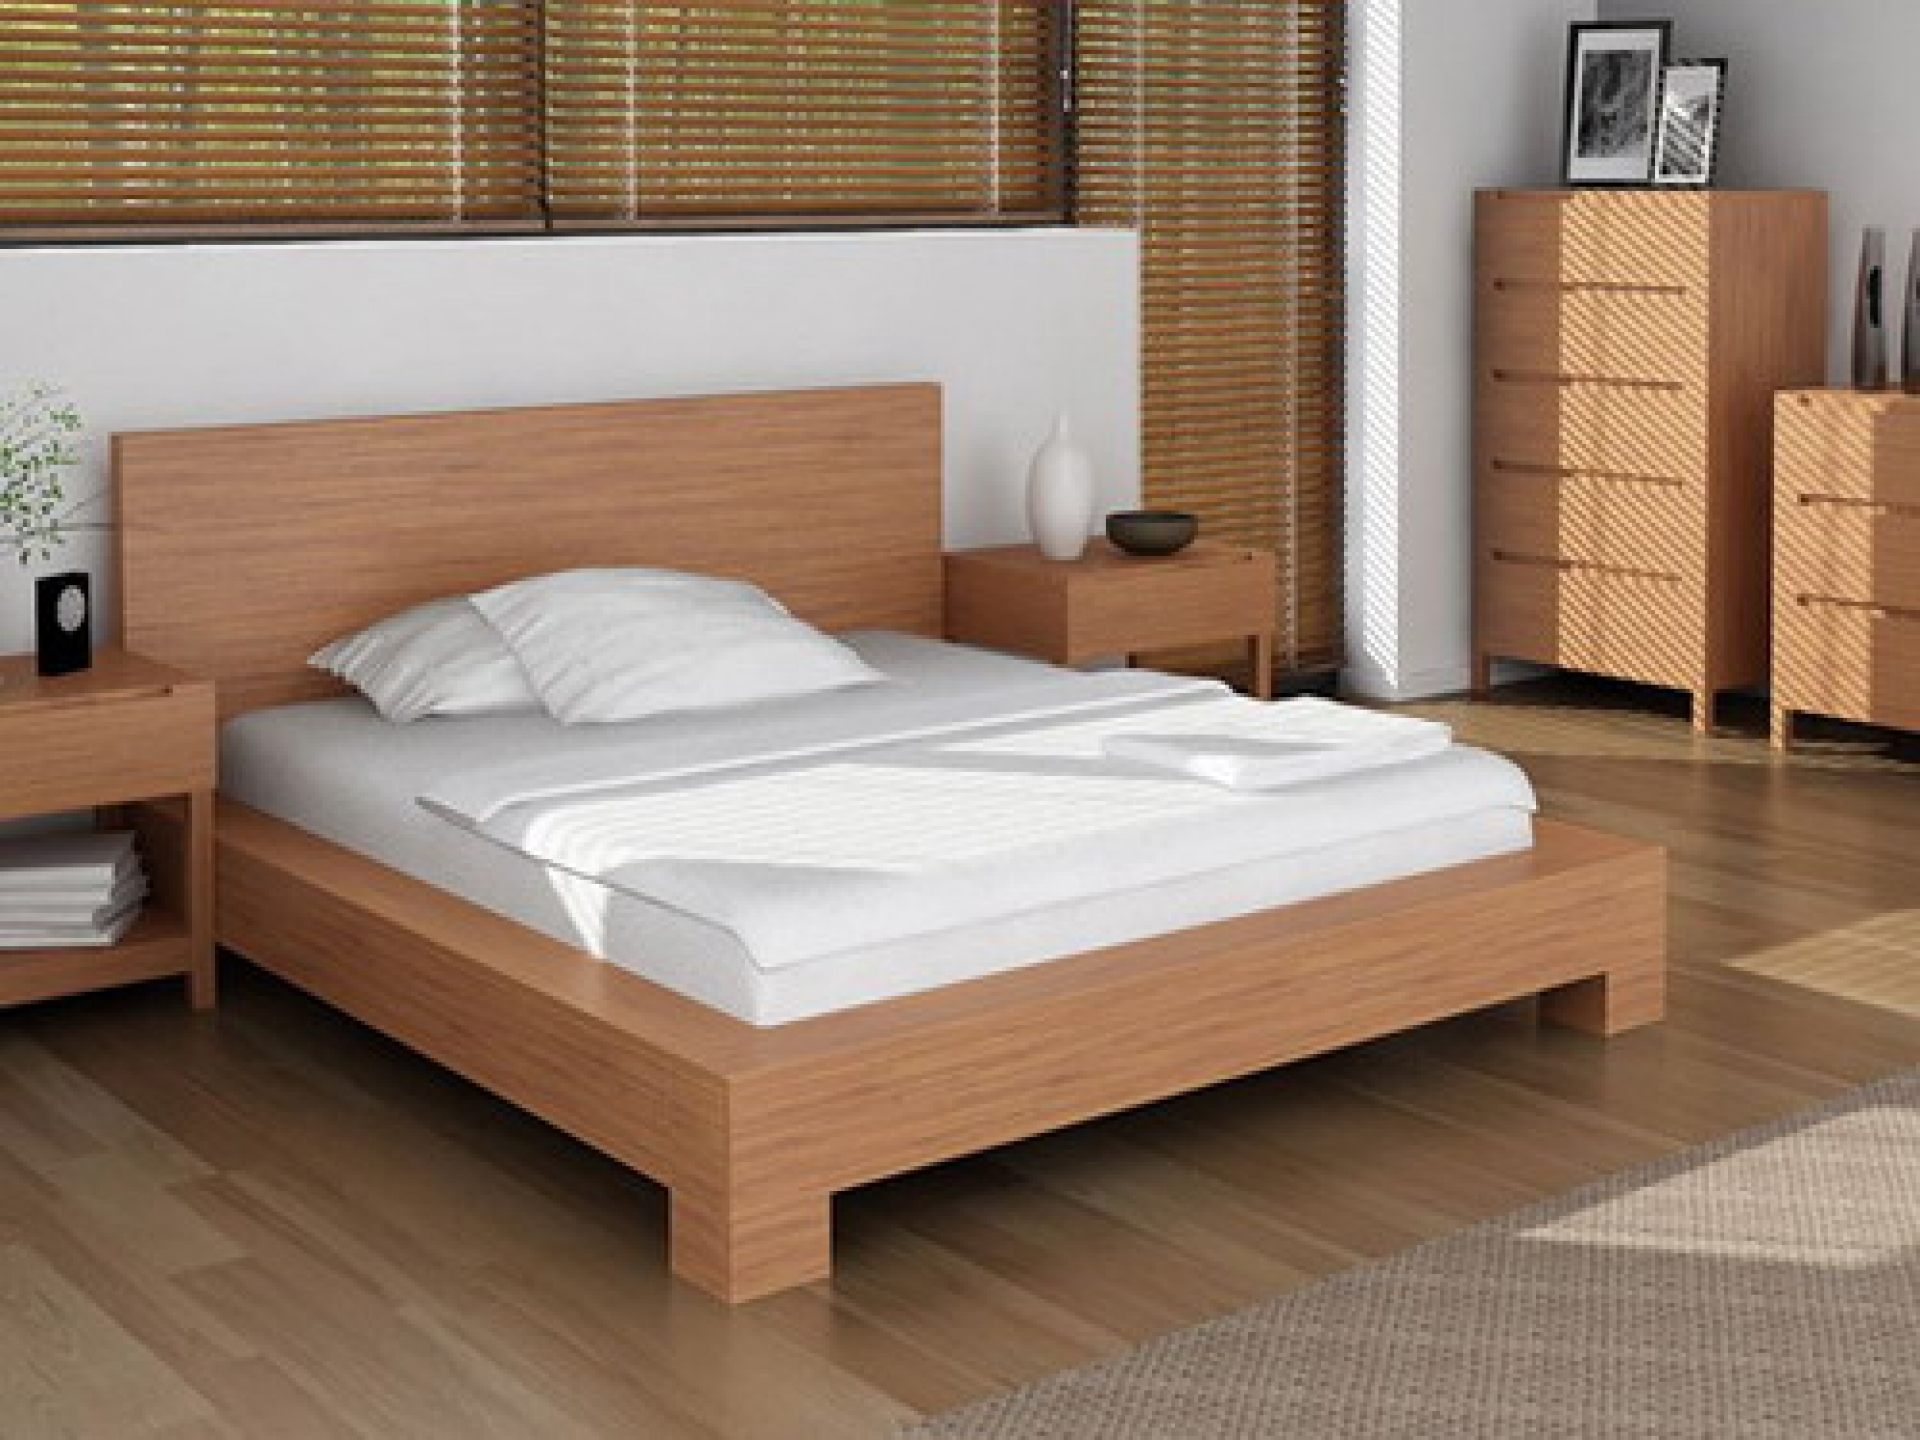 Wooden bed frame ideas - Loft Bed Frame With Headboard For Modern Bedroom White Pillows White Bedding And White Bedcover Modern